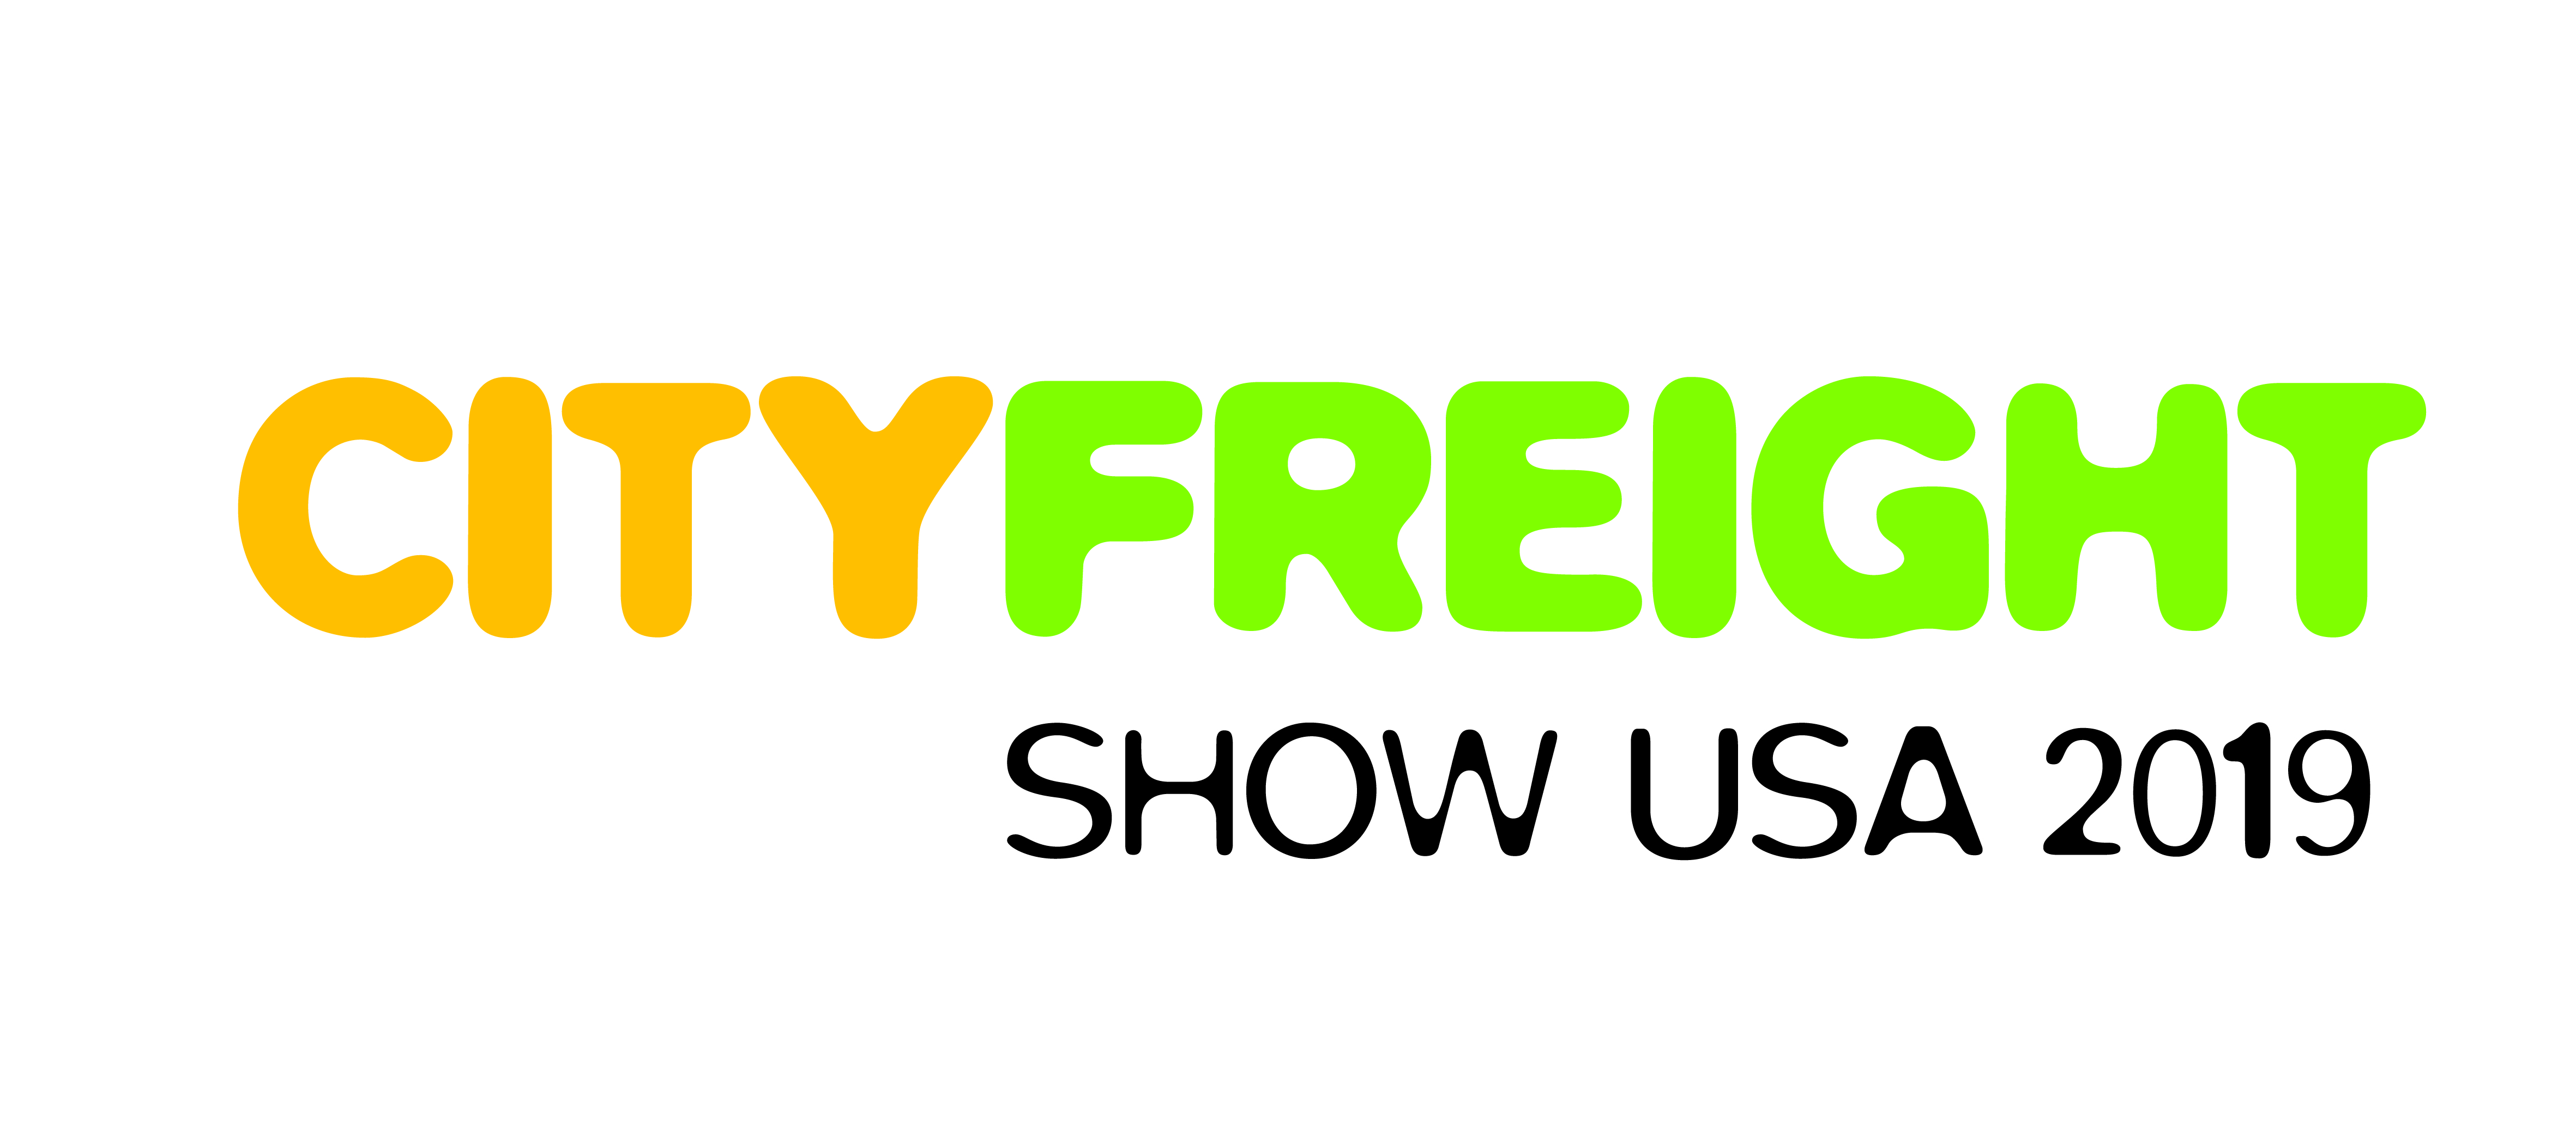 City Freight Show USA 2019 NEW Logo Yellow Green